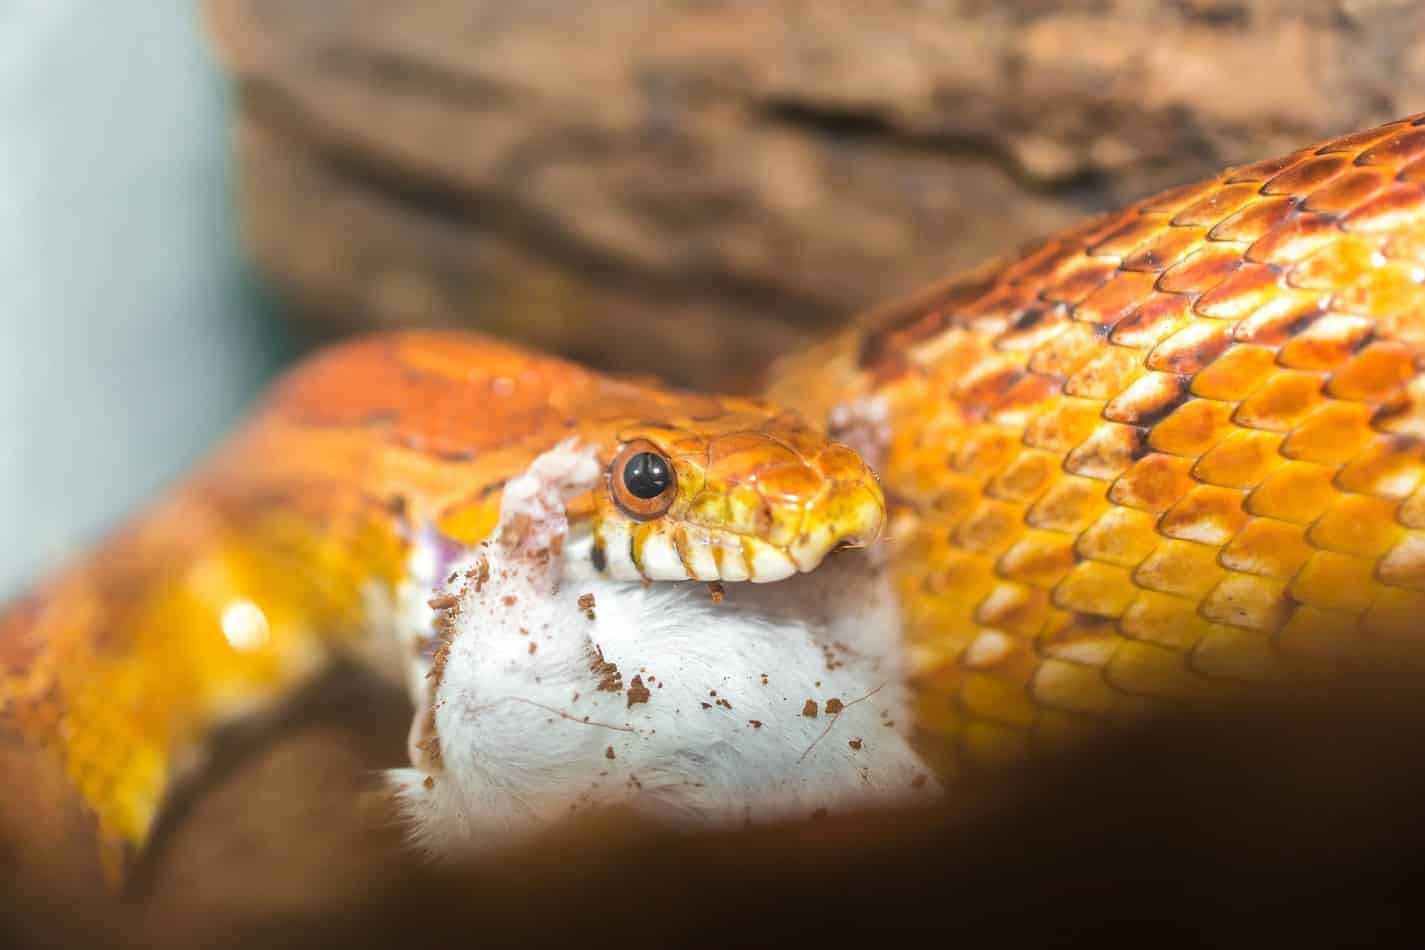 What Do Corn Snakes Eat in the Wild and in Captivity?